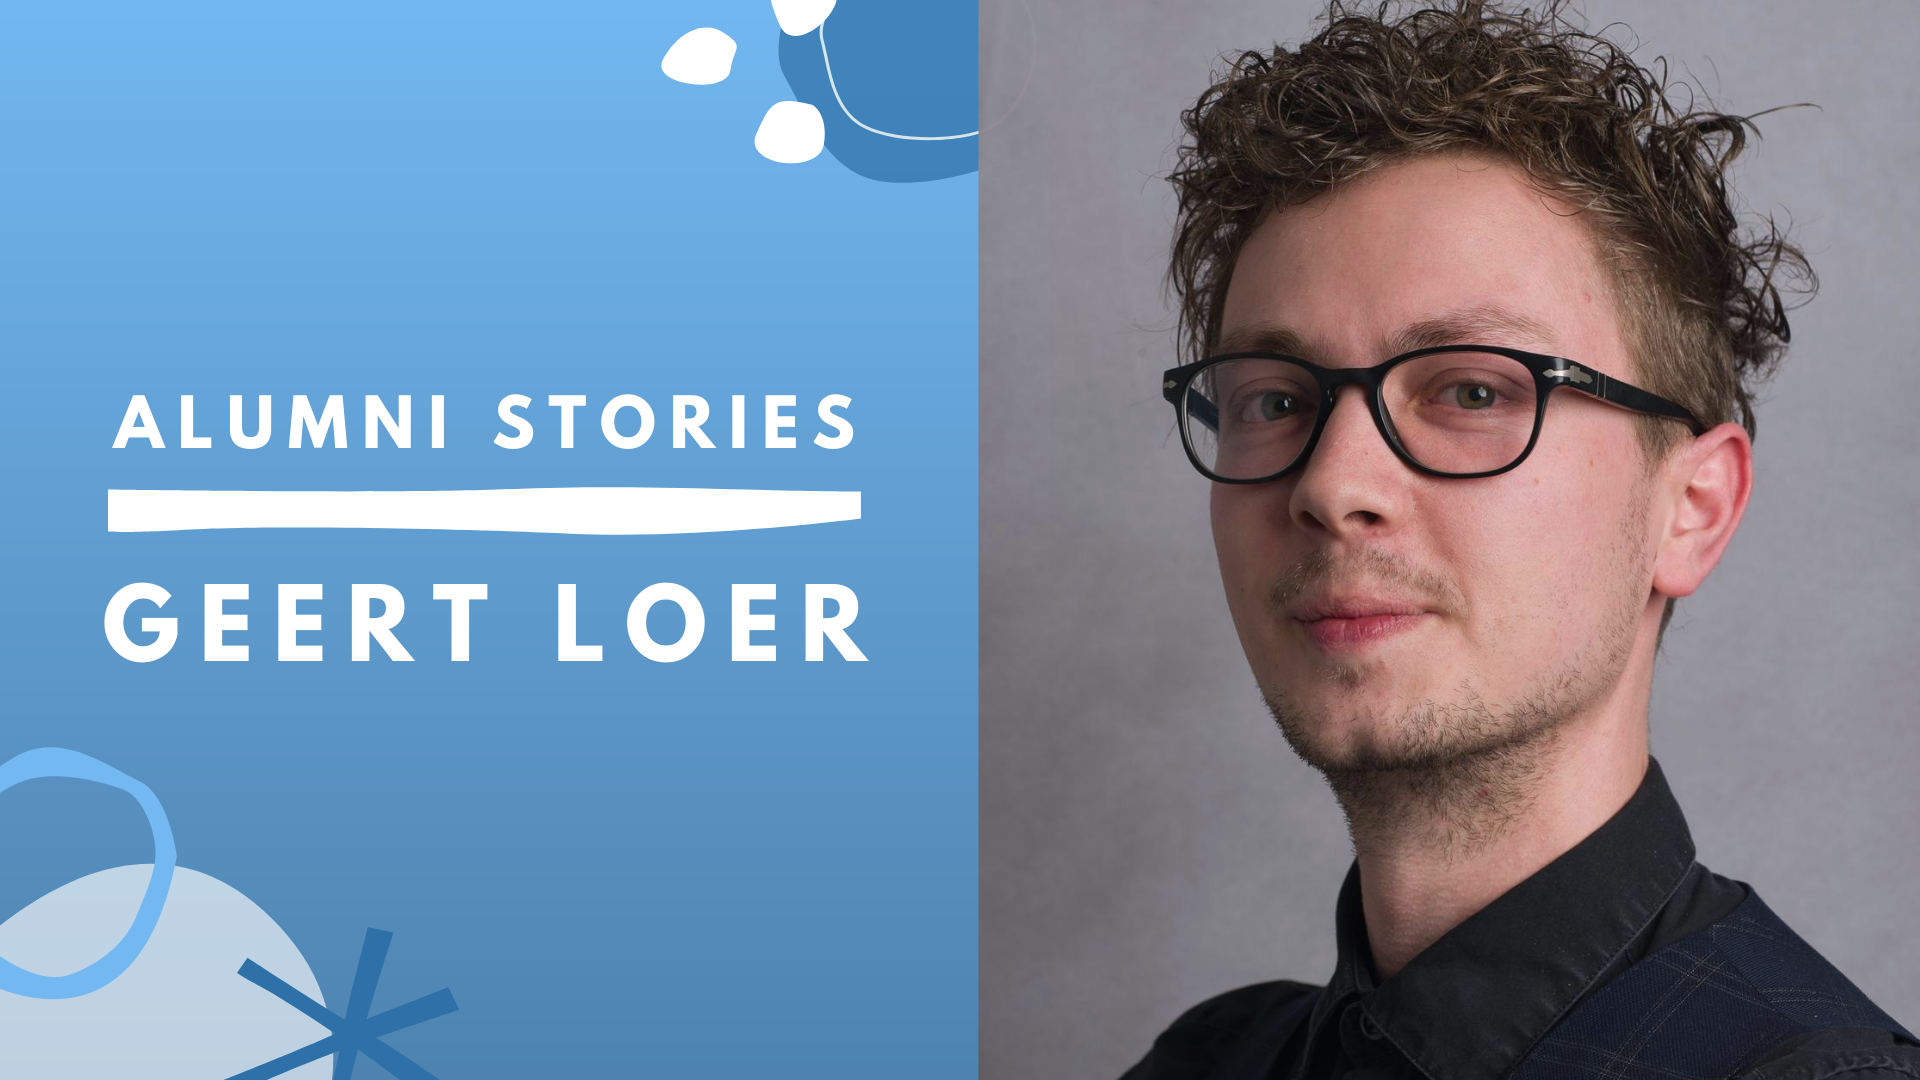 Alumni Stories: Geert Loer